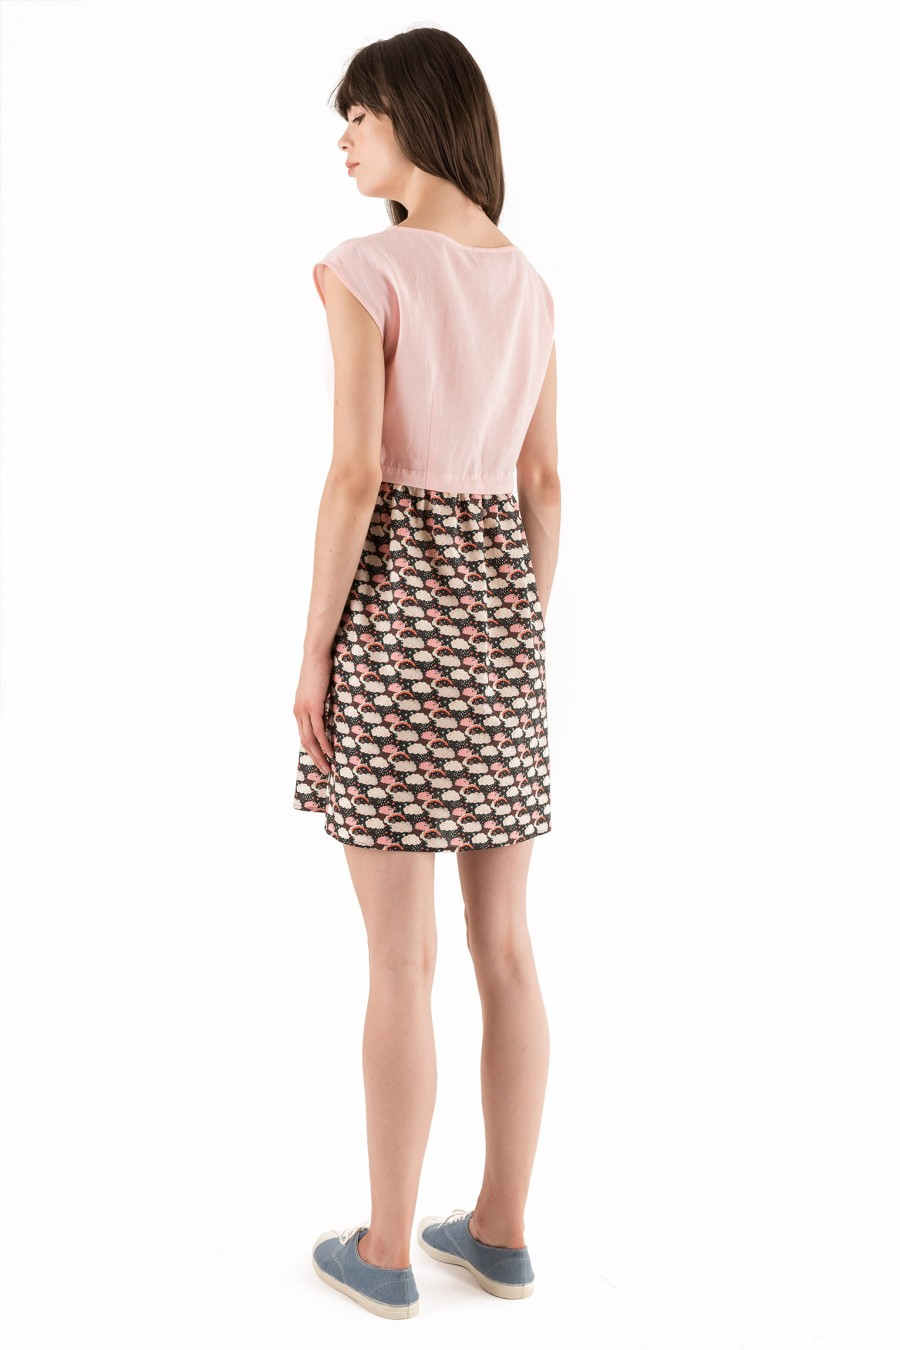 Dress with pink and black print